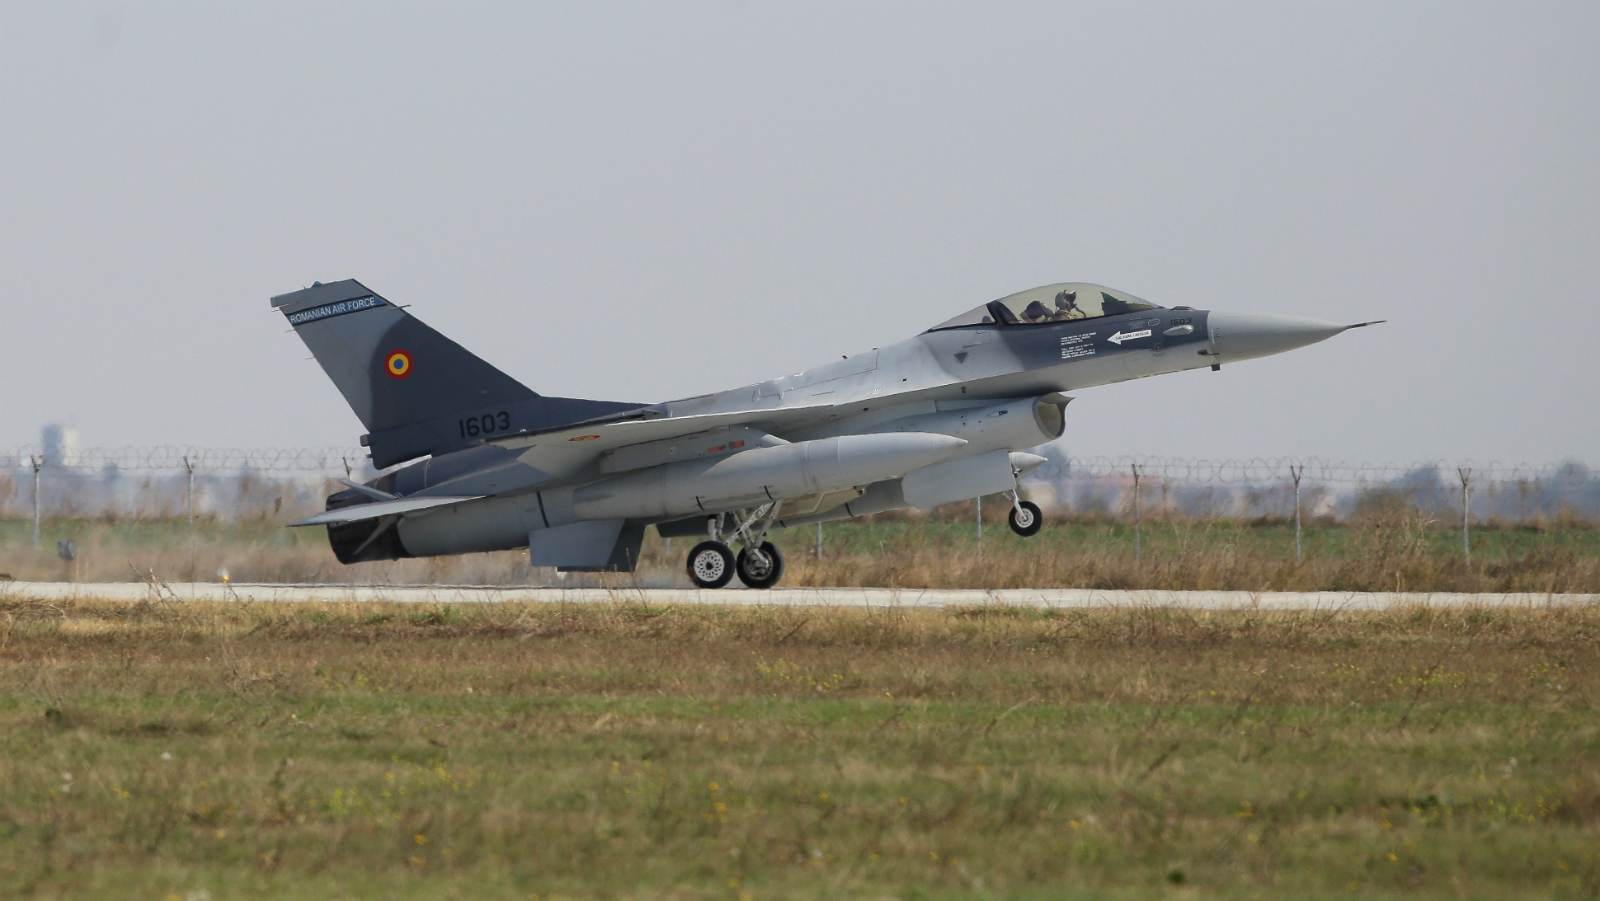 A F-16 plane touches down at 86th Air Base of Romanian Air Force after performing a flight during the official presentation ceremony of 6 F-16 planes bought by the Romanian government, in Fetesti, Calarasi county, Romania October 7, 2016.